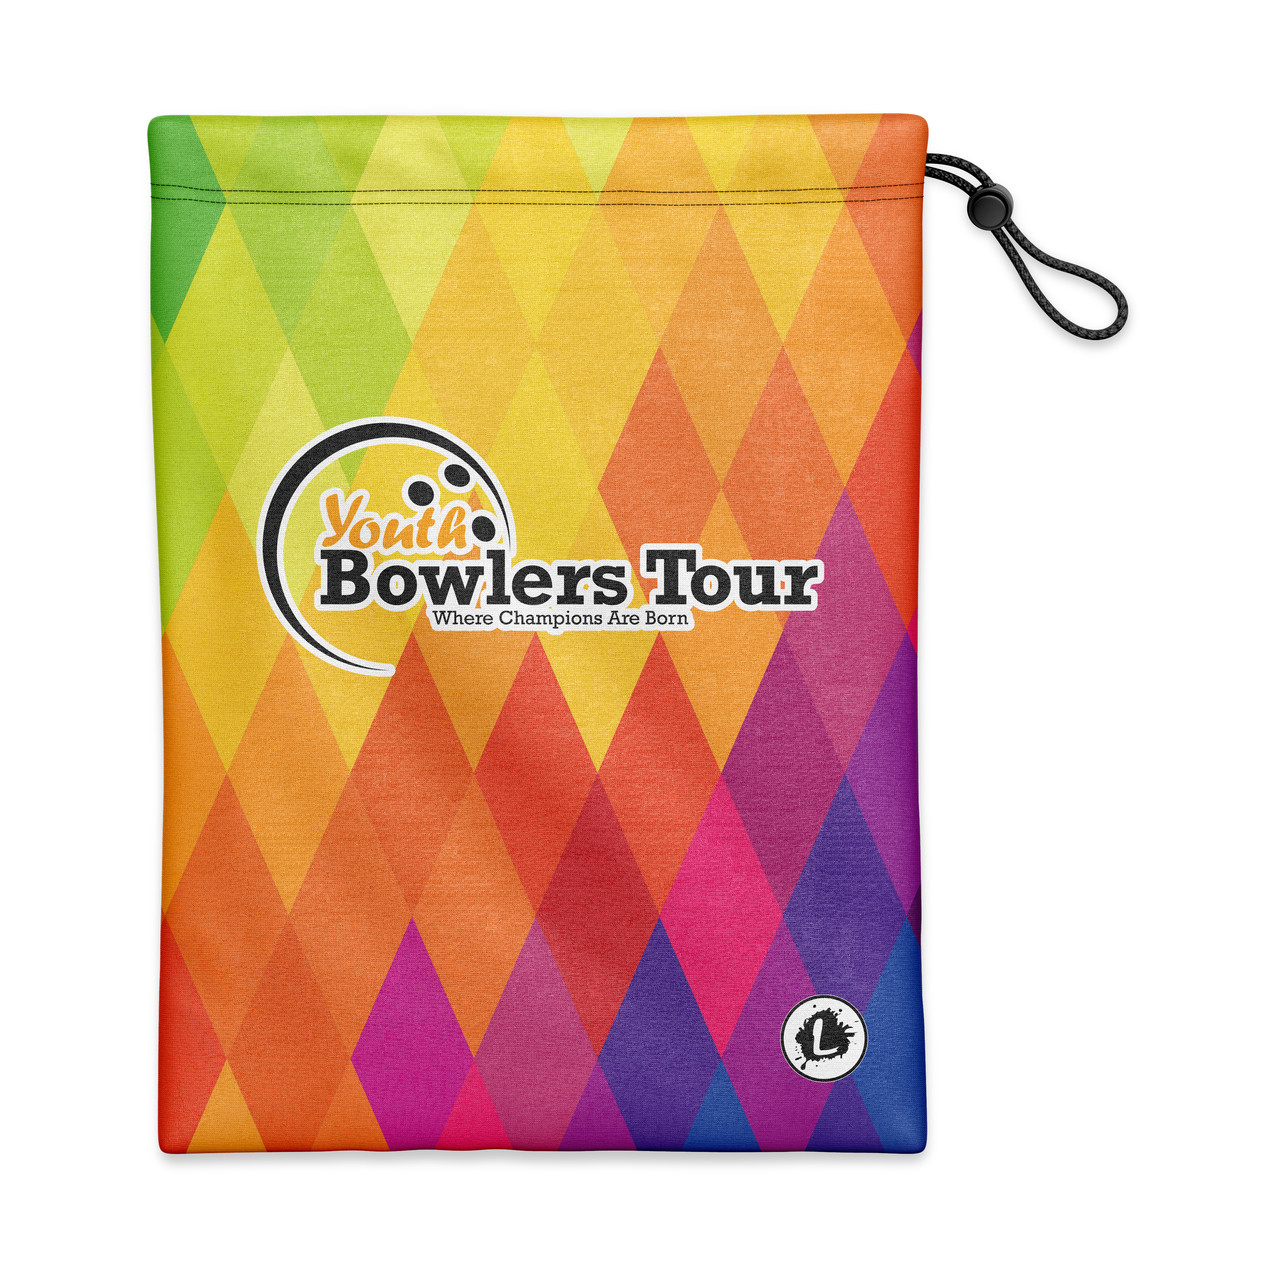 Youth Bowlers Tour - YBT - Shoe Bag - YBT001